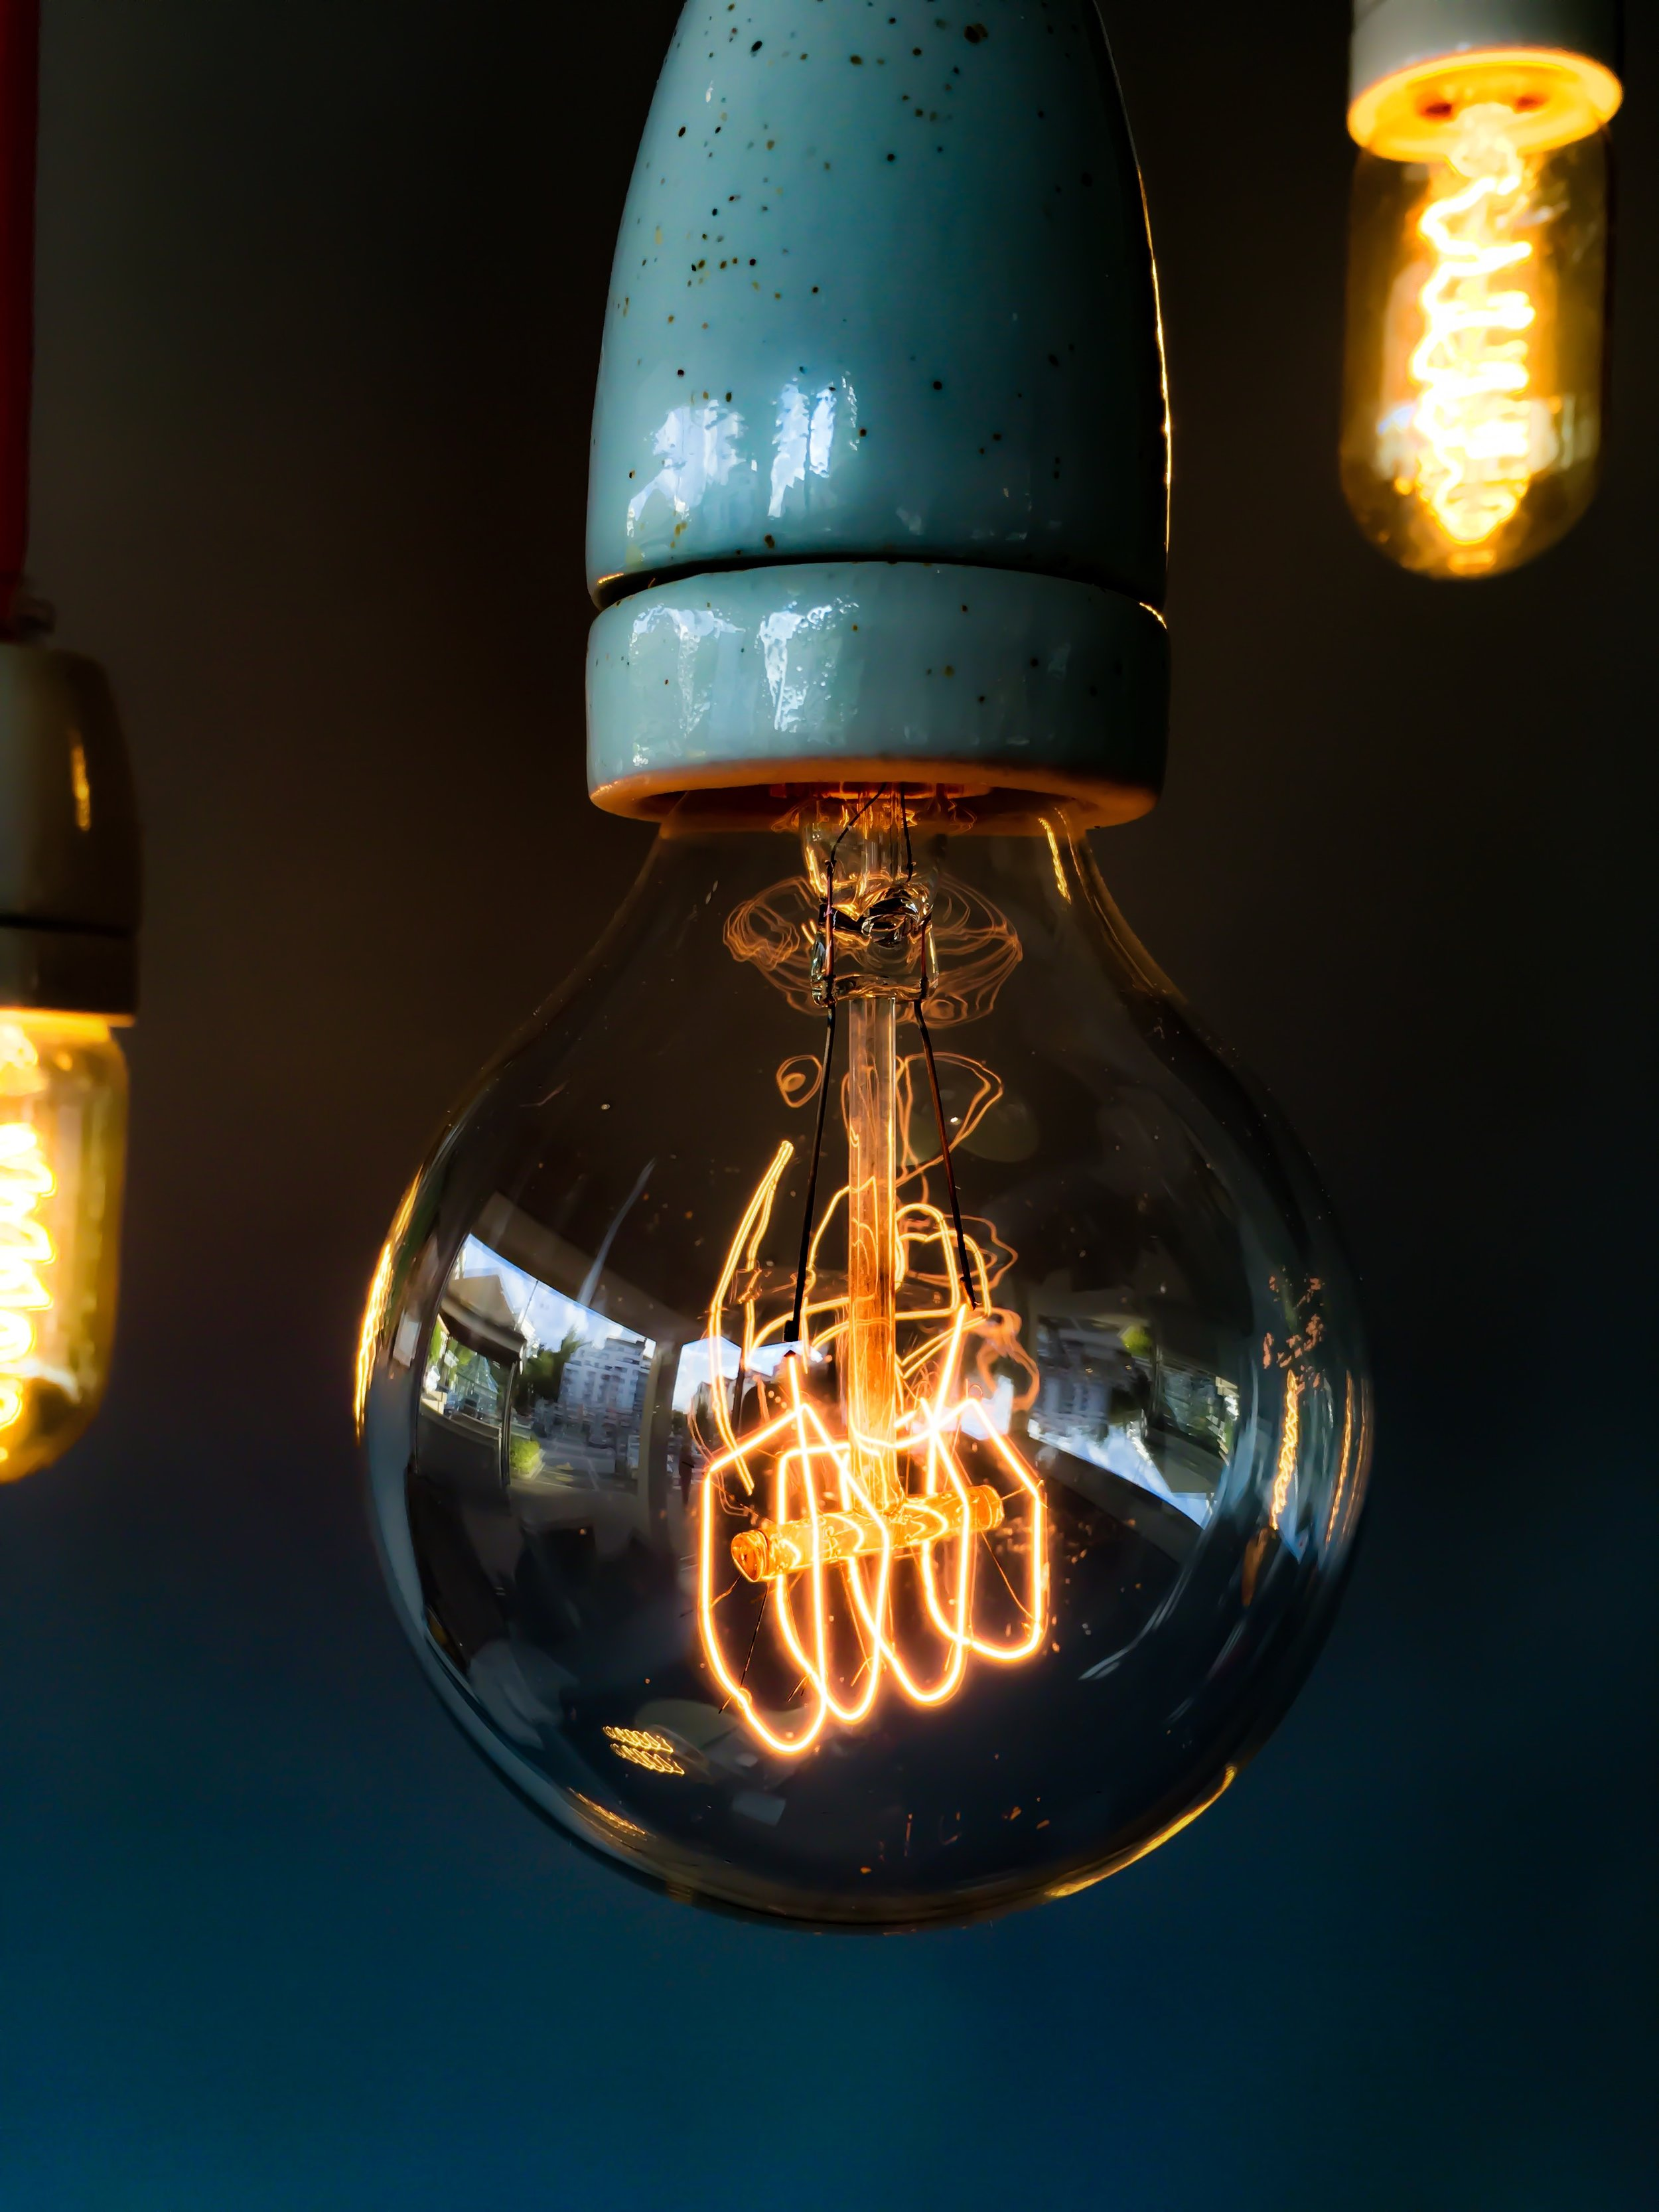 Up to £2.5bn a year potential energy savings for small businesses -